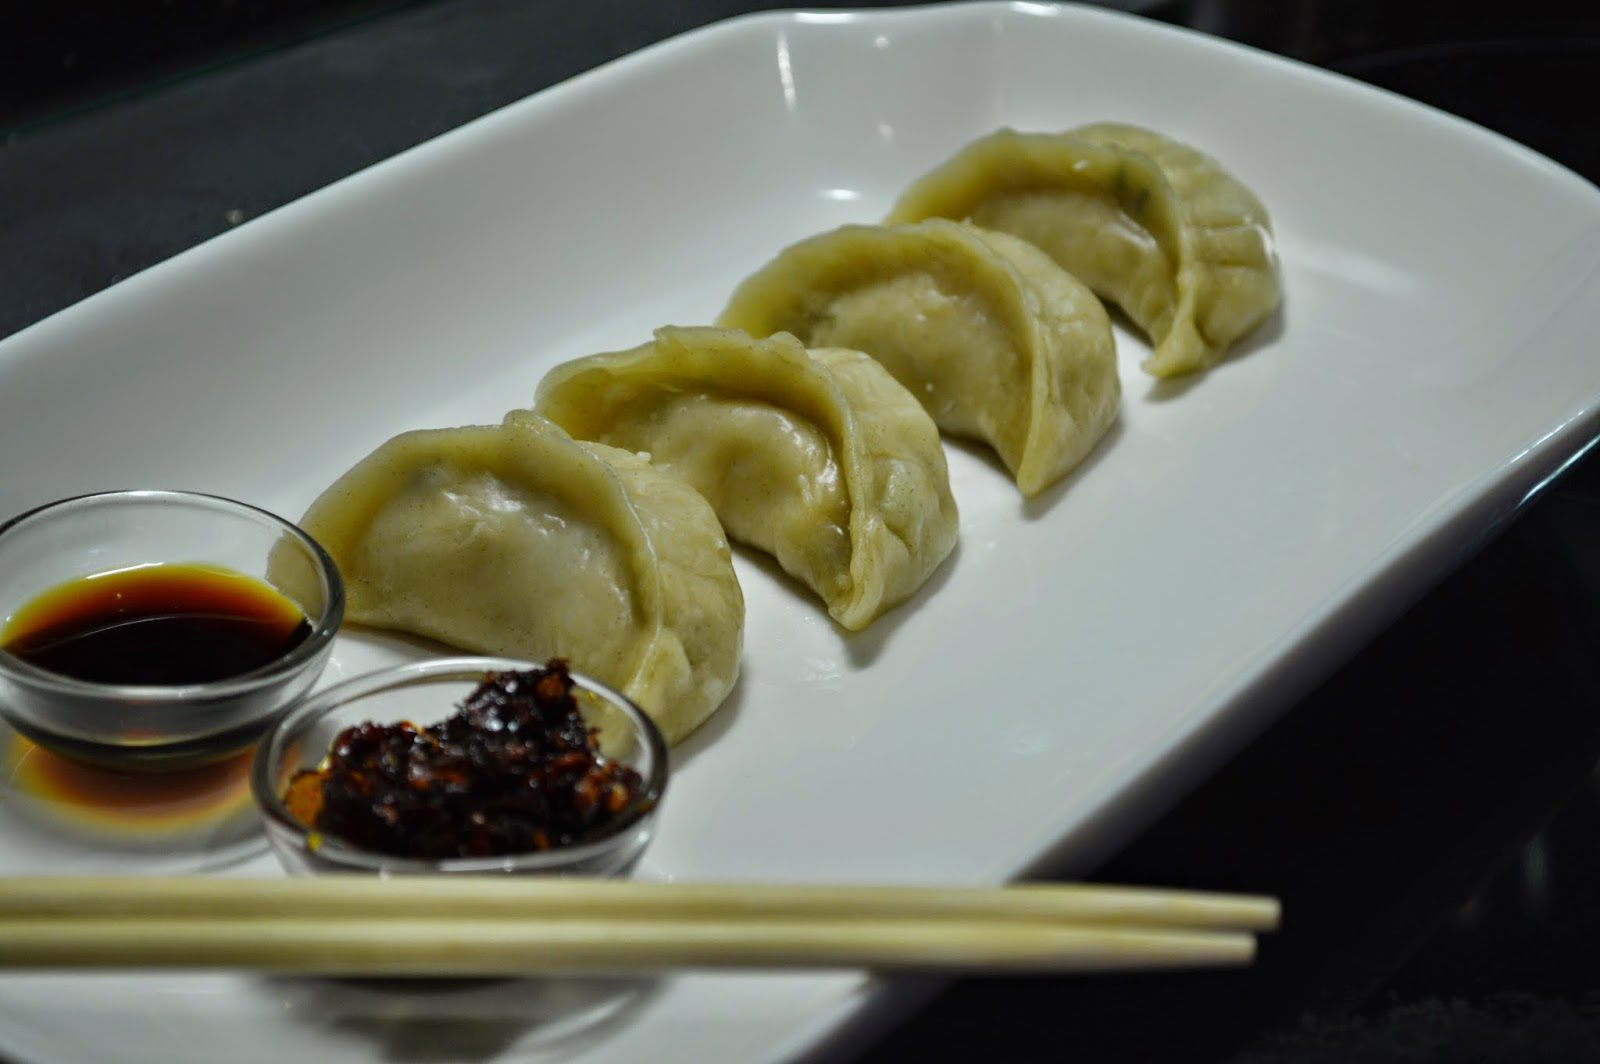 Momos / Steamed Dumplings / Dim sums